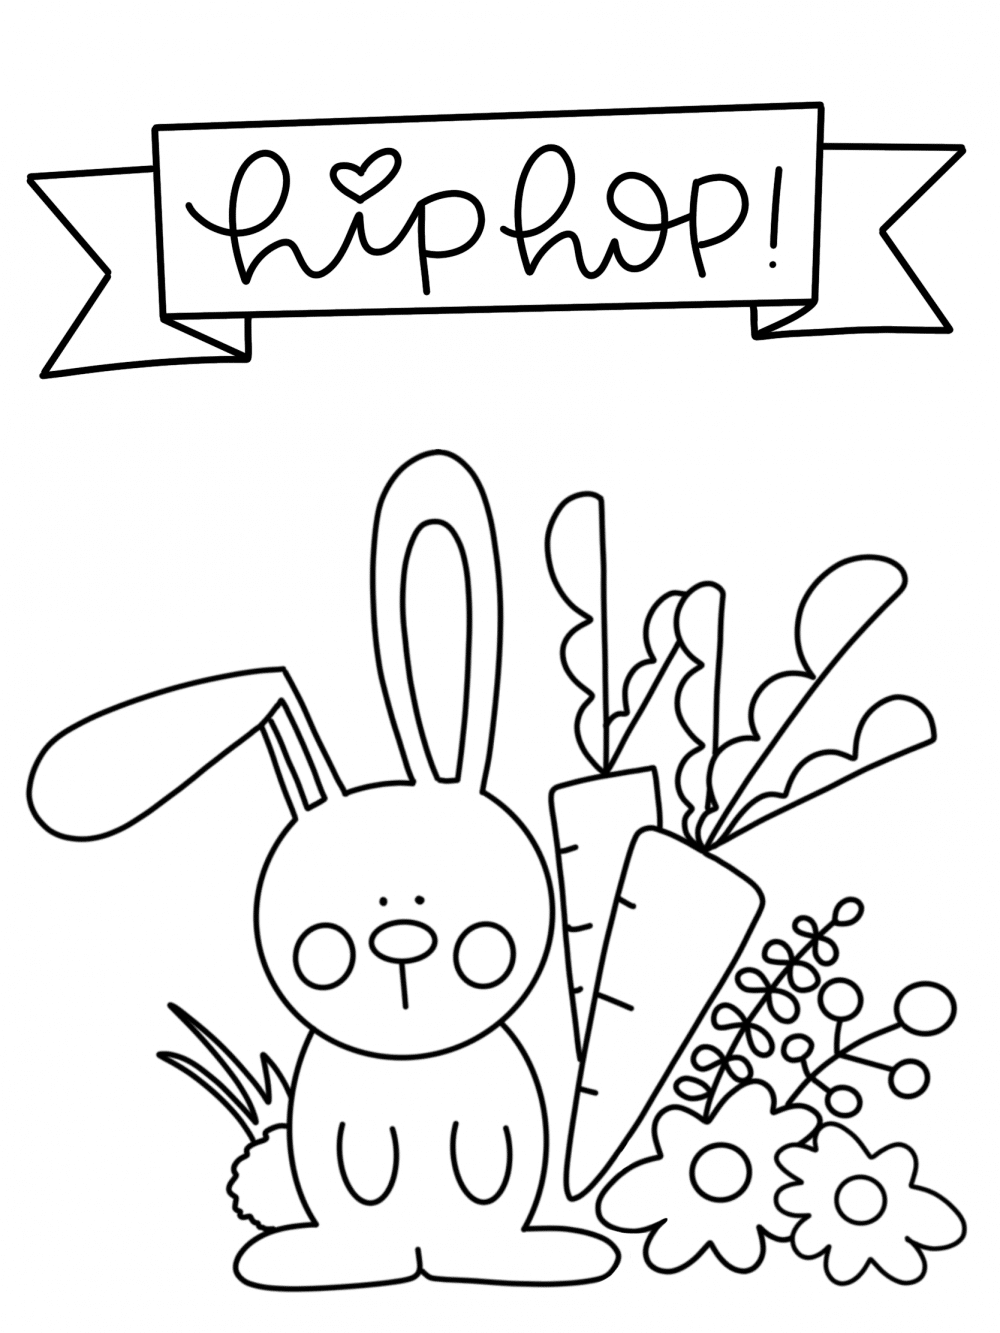 Free Easter Coloring Page Printable The Sweeter Side Of Mommyhood Easter Coloring Pages Printable Easter Colouring Free Easter Coloring Pages [ 1333 x 1000 Pixel ]